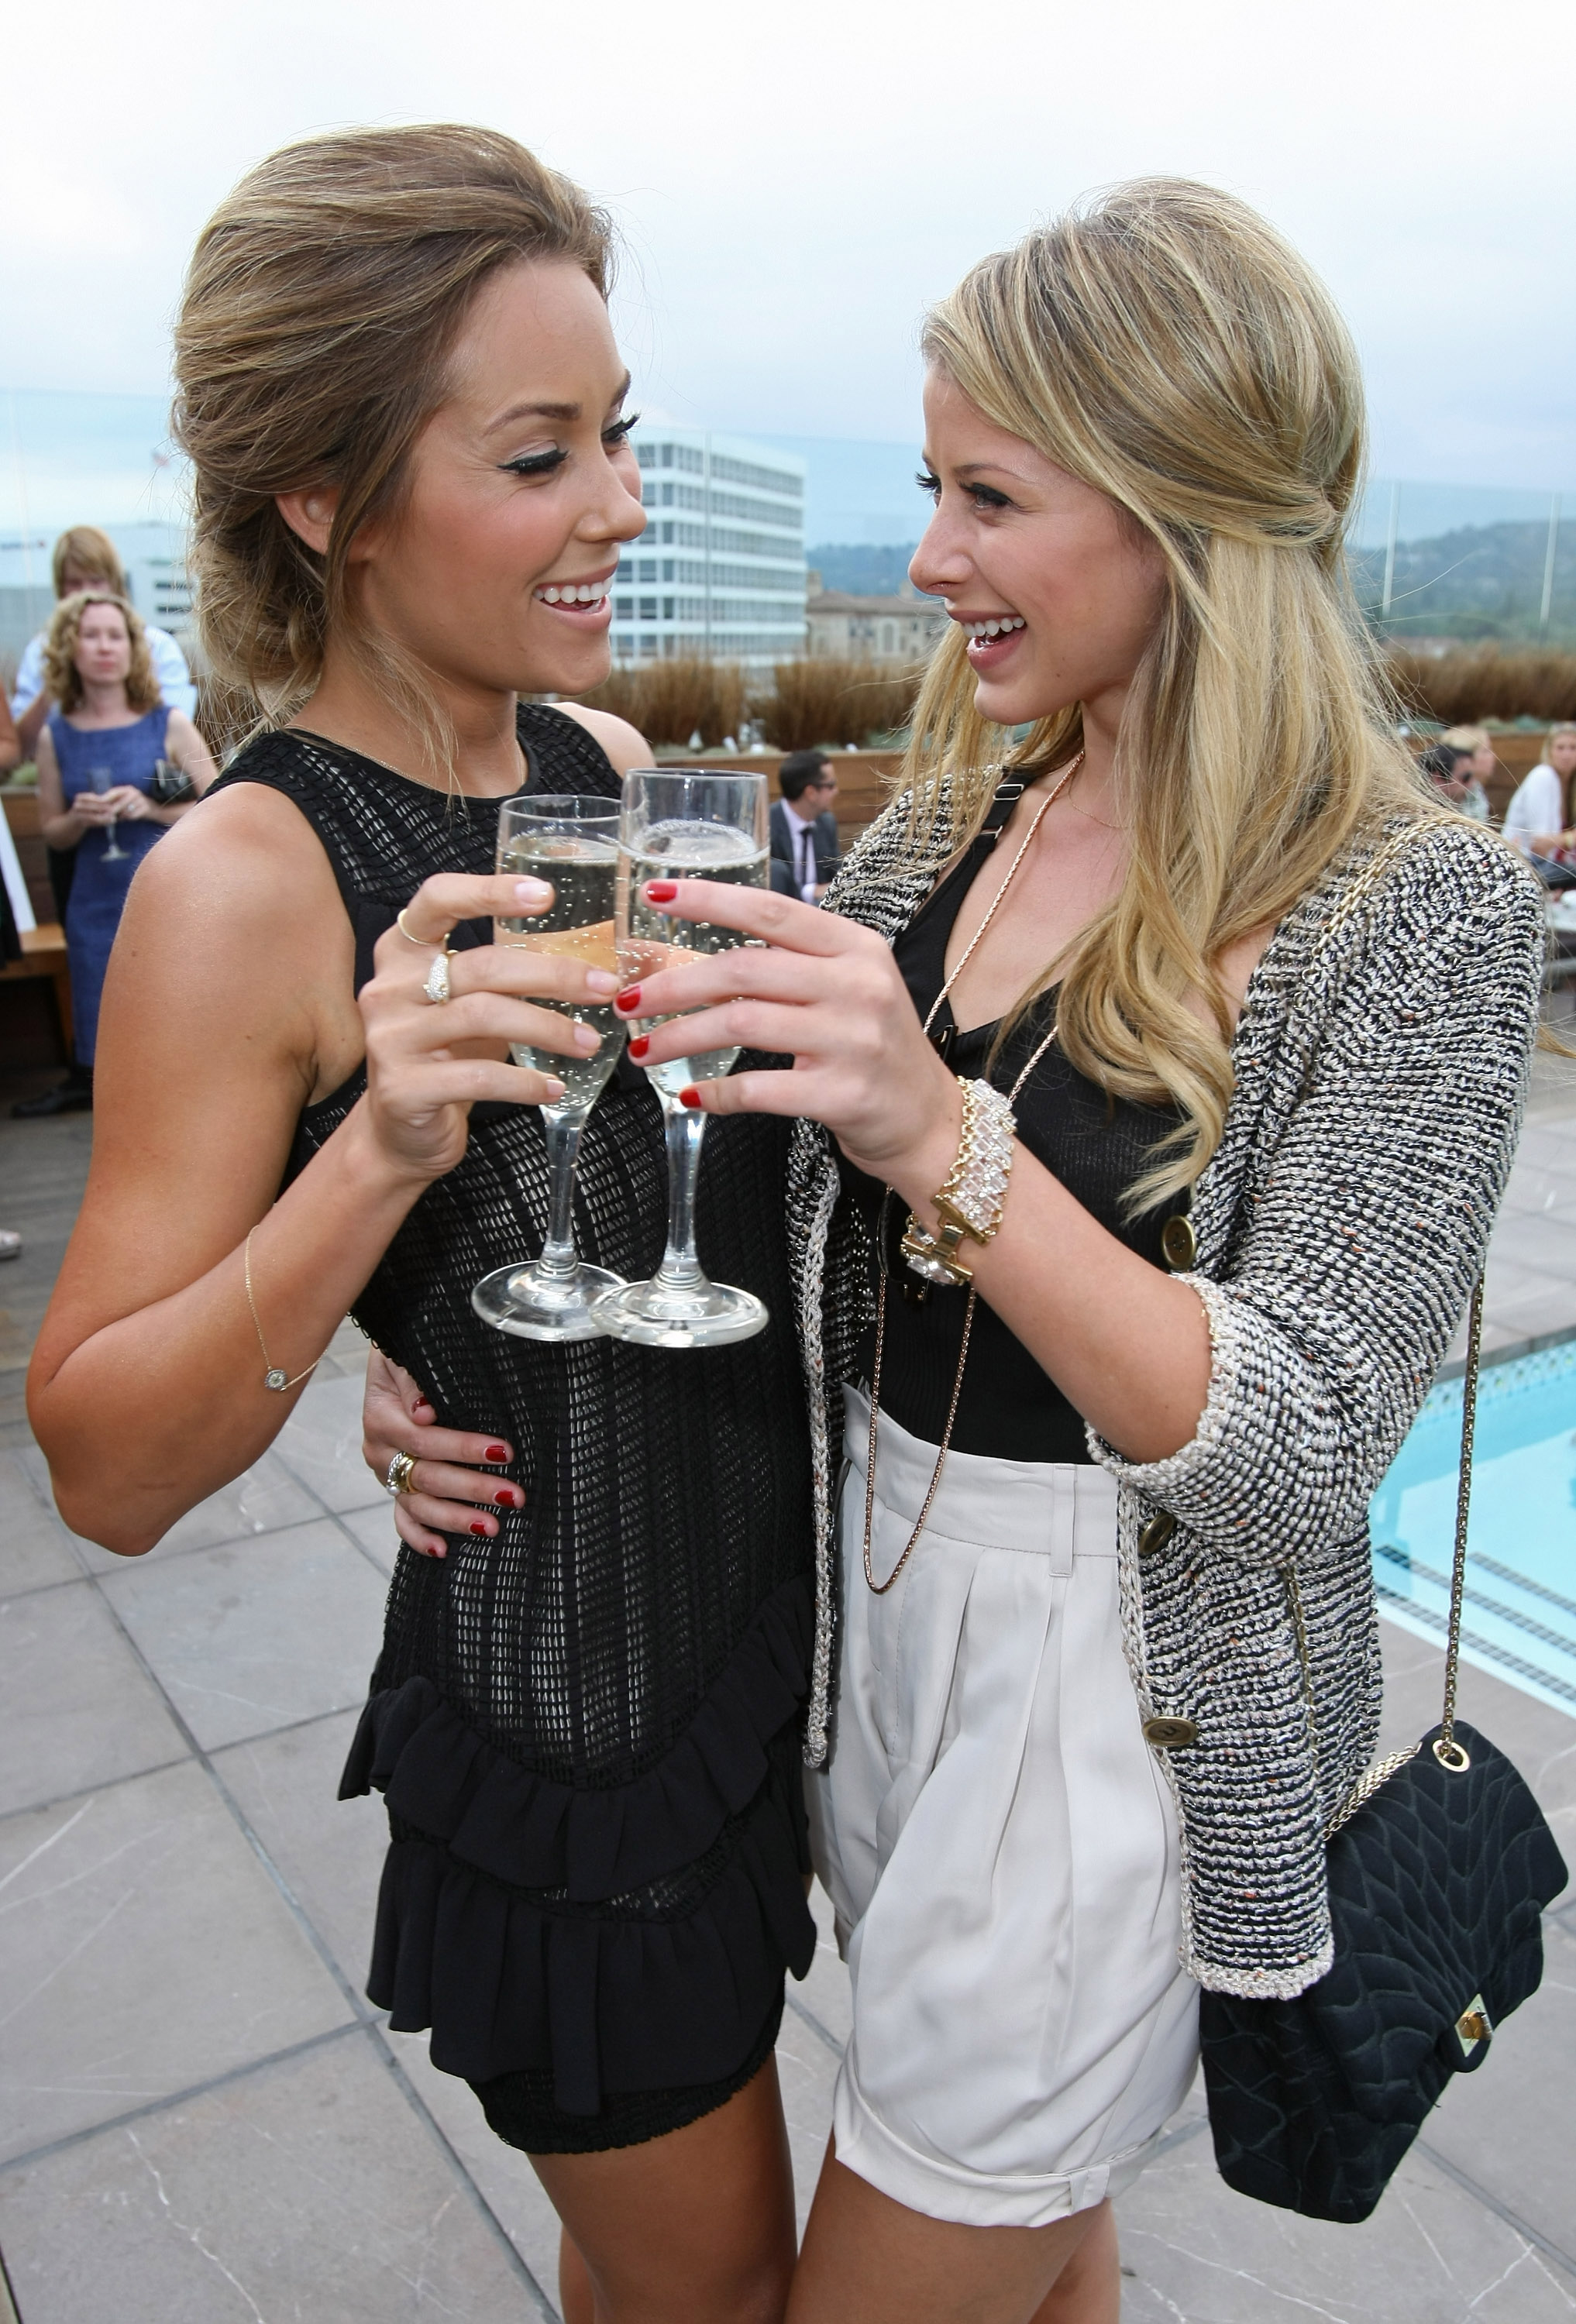 lauren conrad and lo bosworth - photo #8